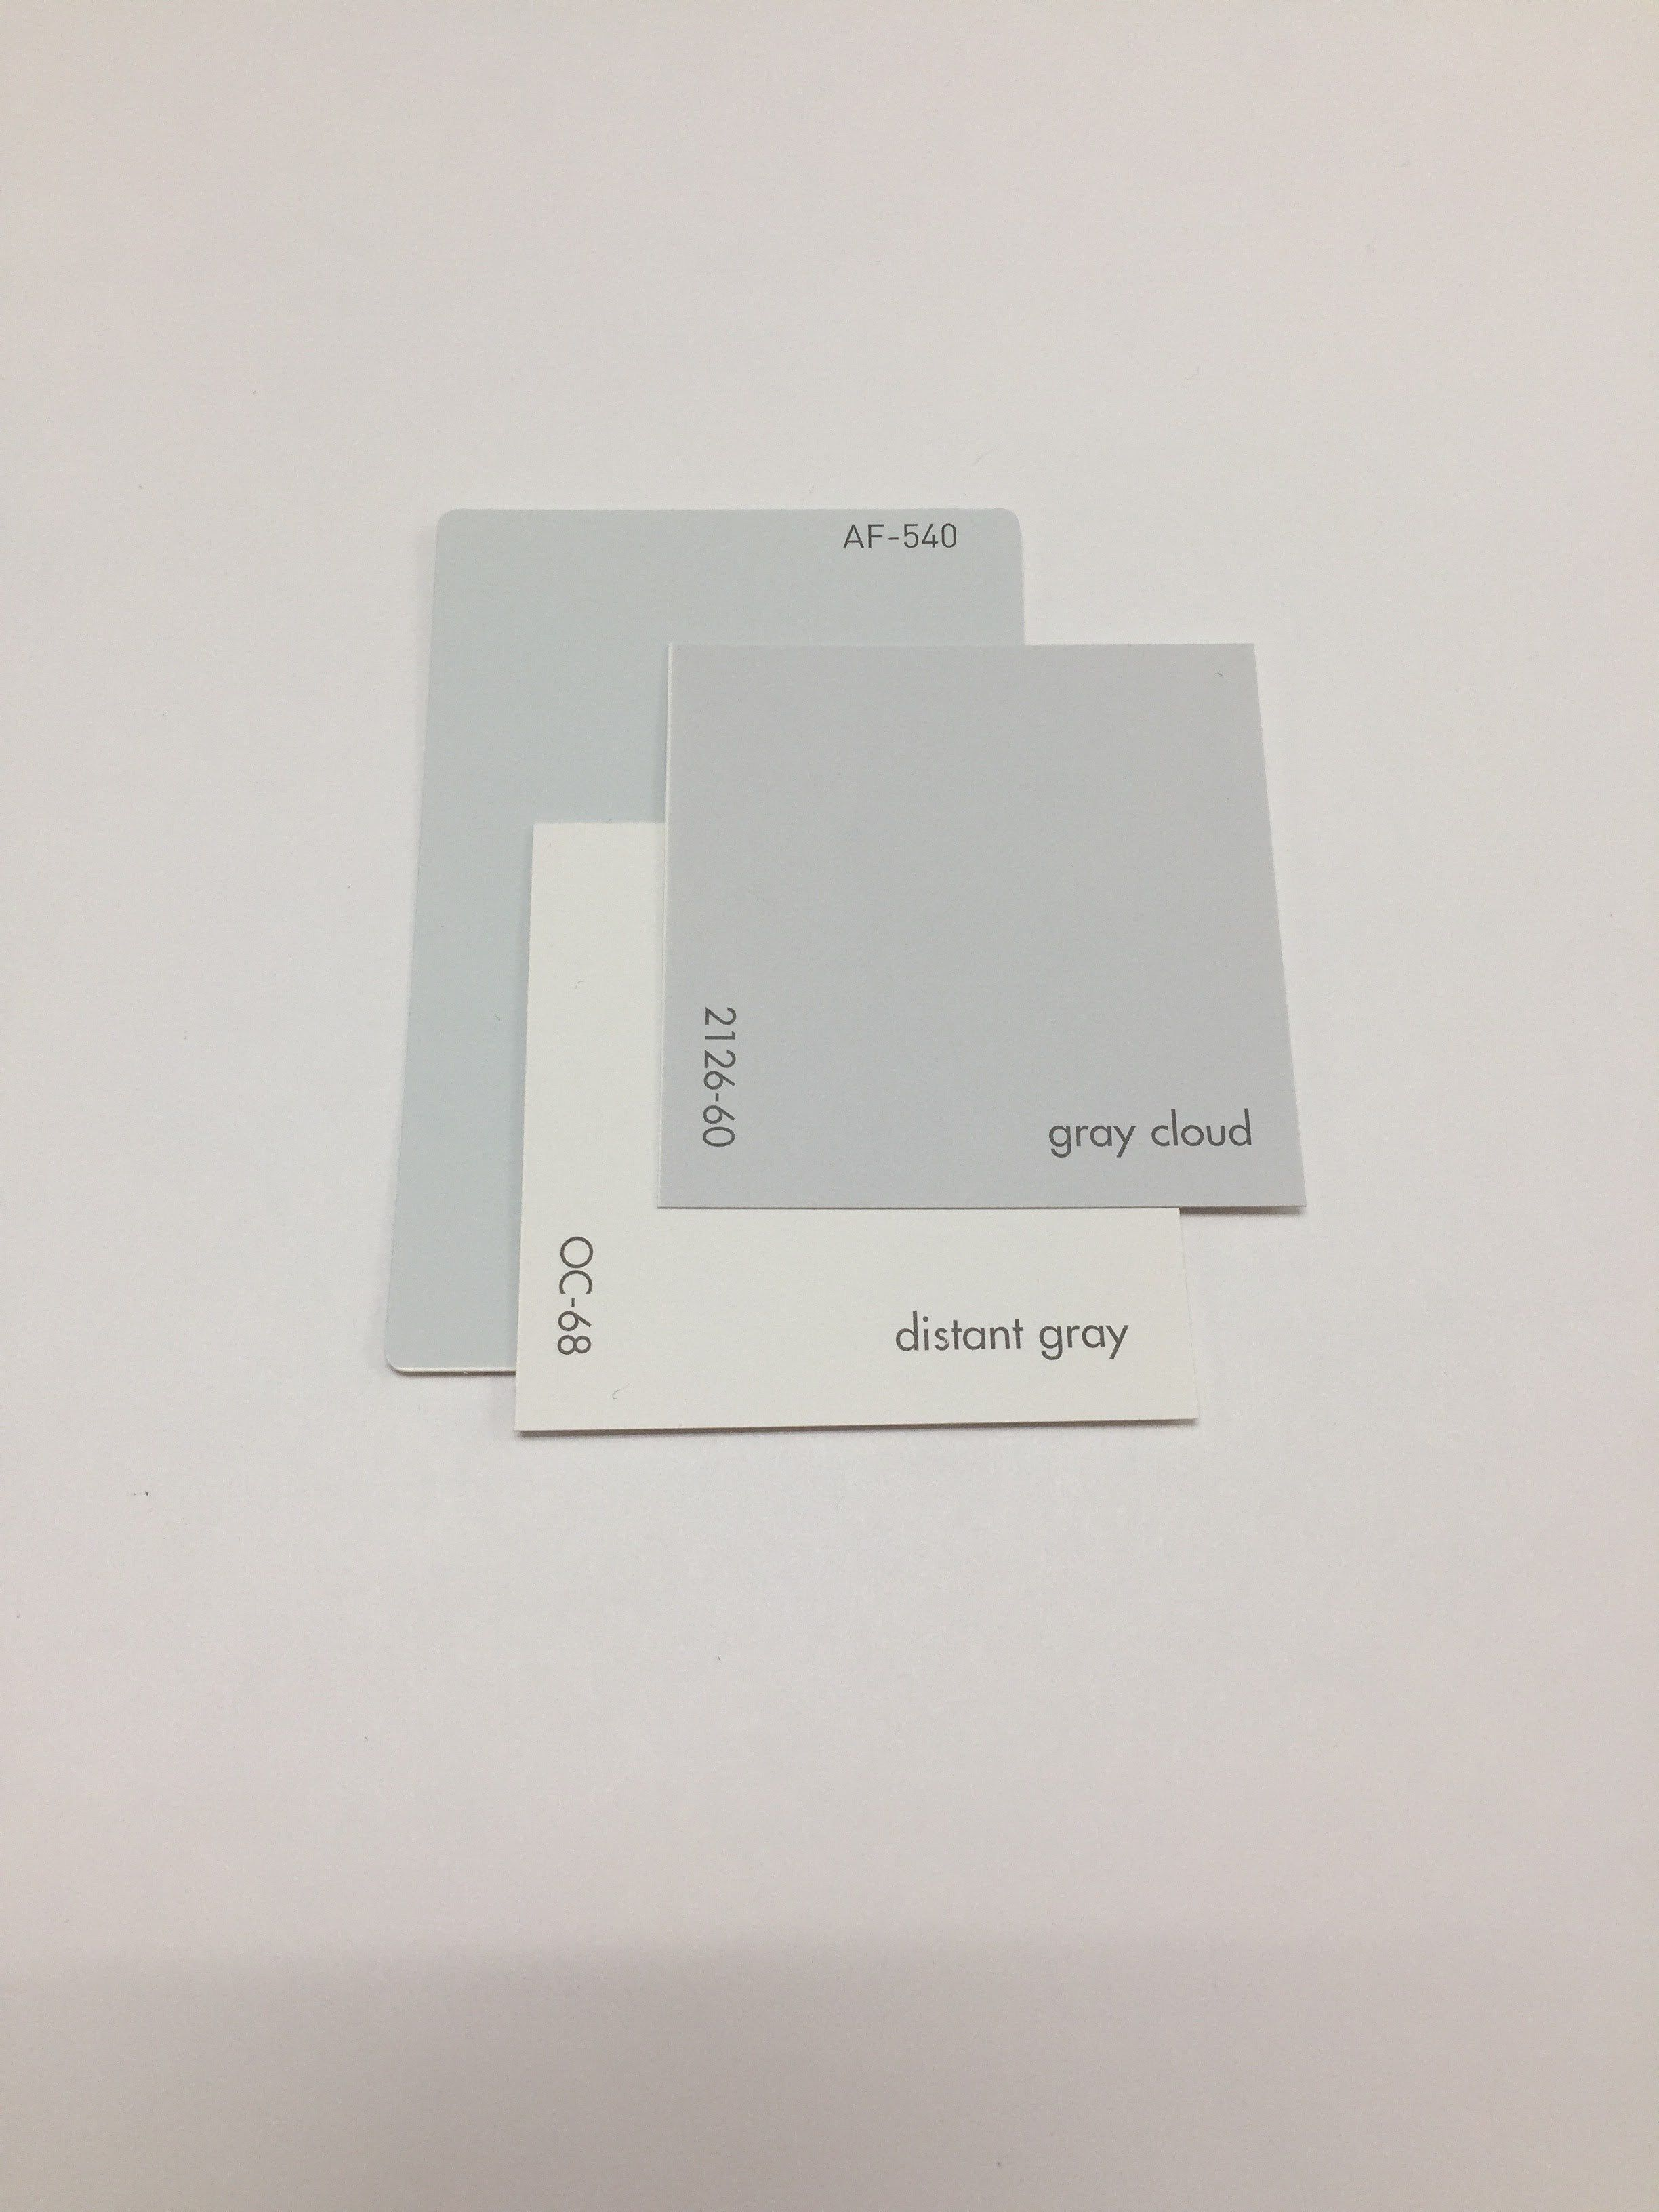 Benjamin Moore Constellation Af 540 Gray Cloud 2126 60 Distant Oc 68